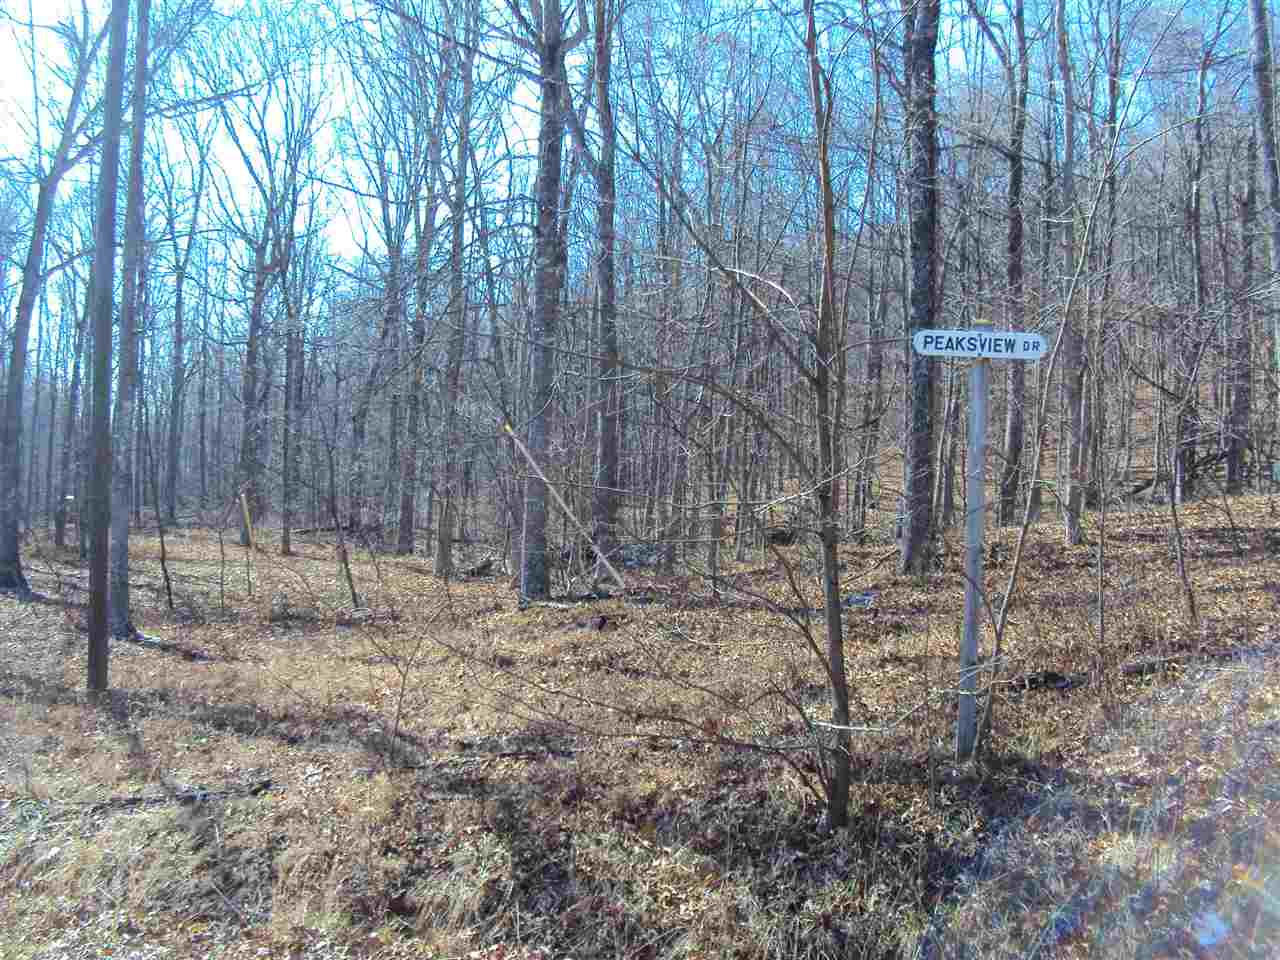 tbd1 POND GAP LN, AUGUSTA SPRINGS, VA 24411